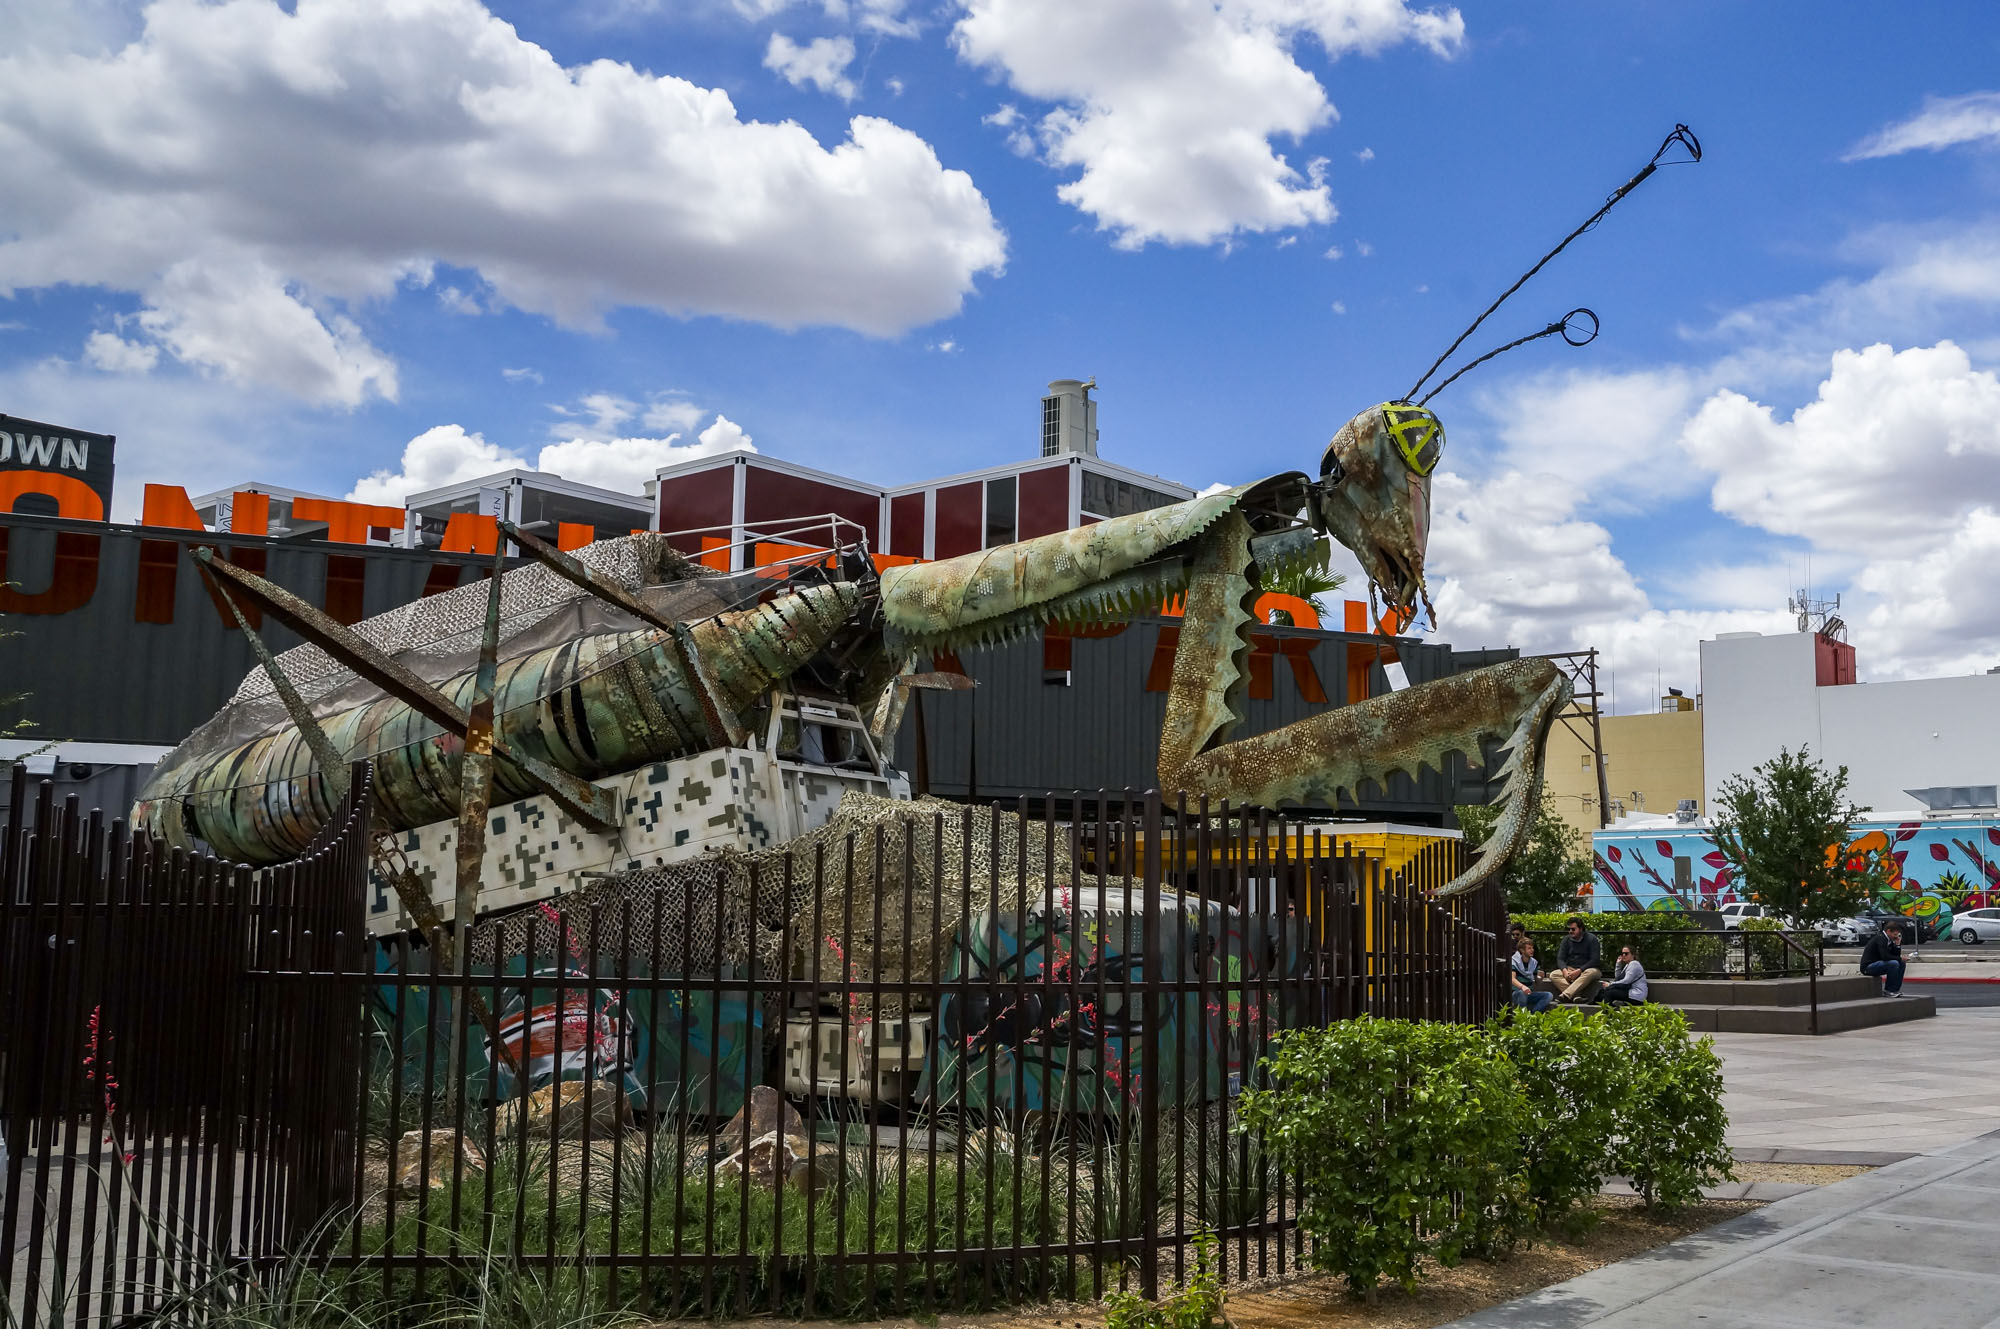 Fremont East Downtown Container Park